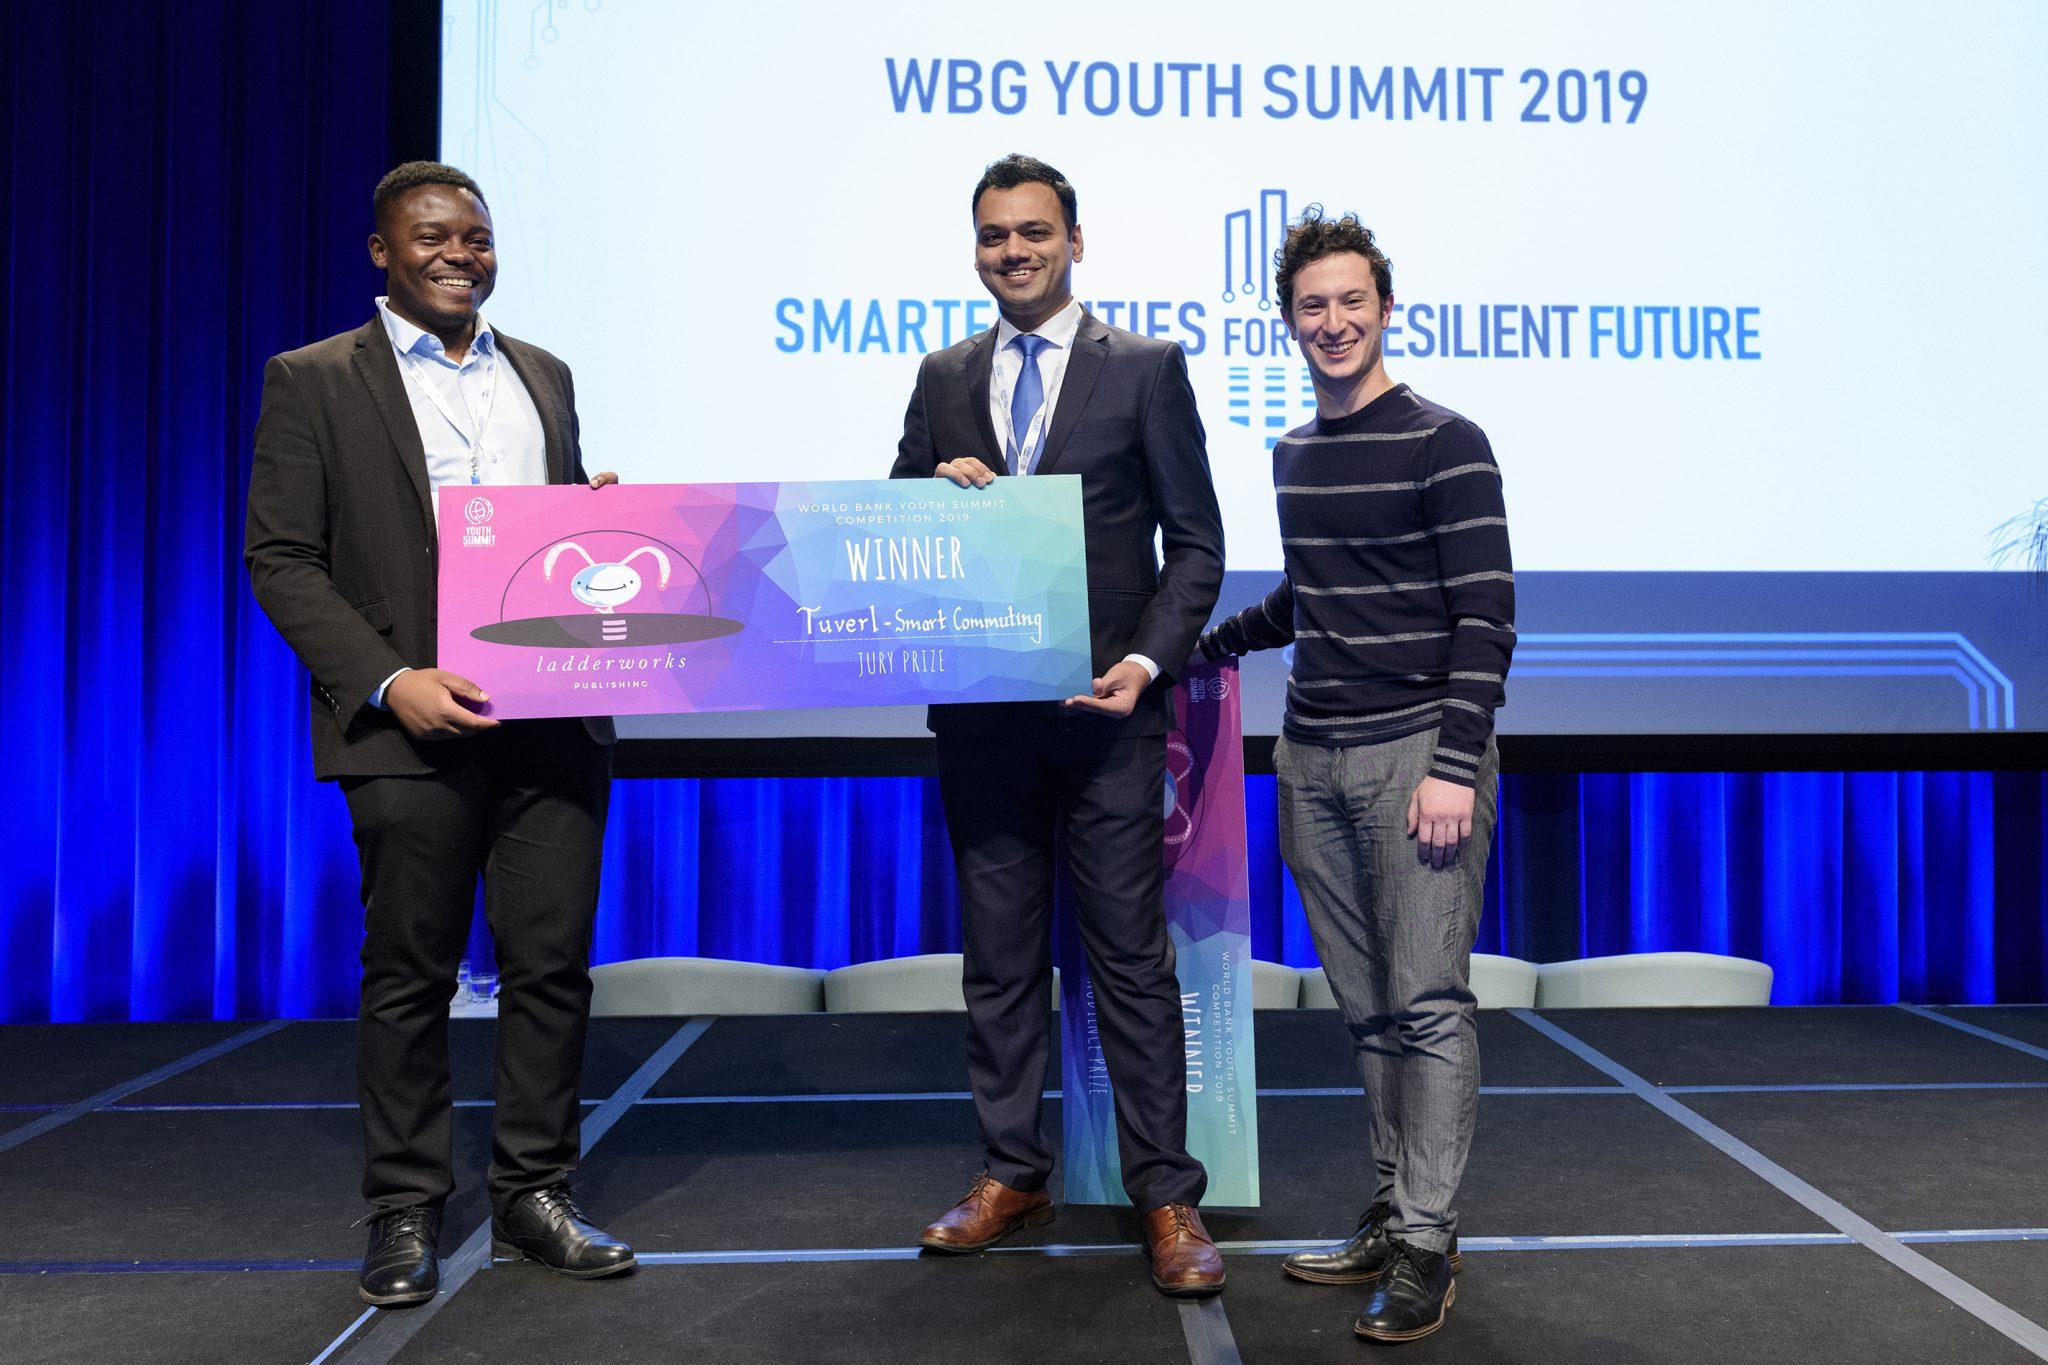 World Bank Youth Summit Ceremony Ladderworks Award for Tuverl